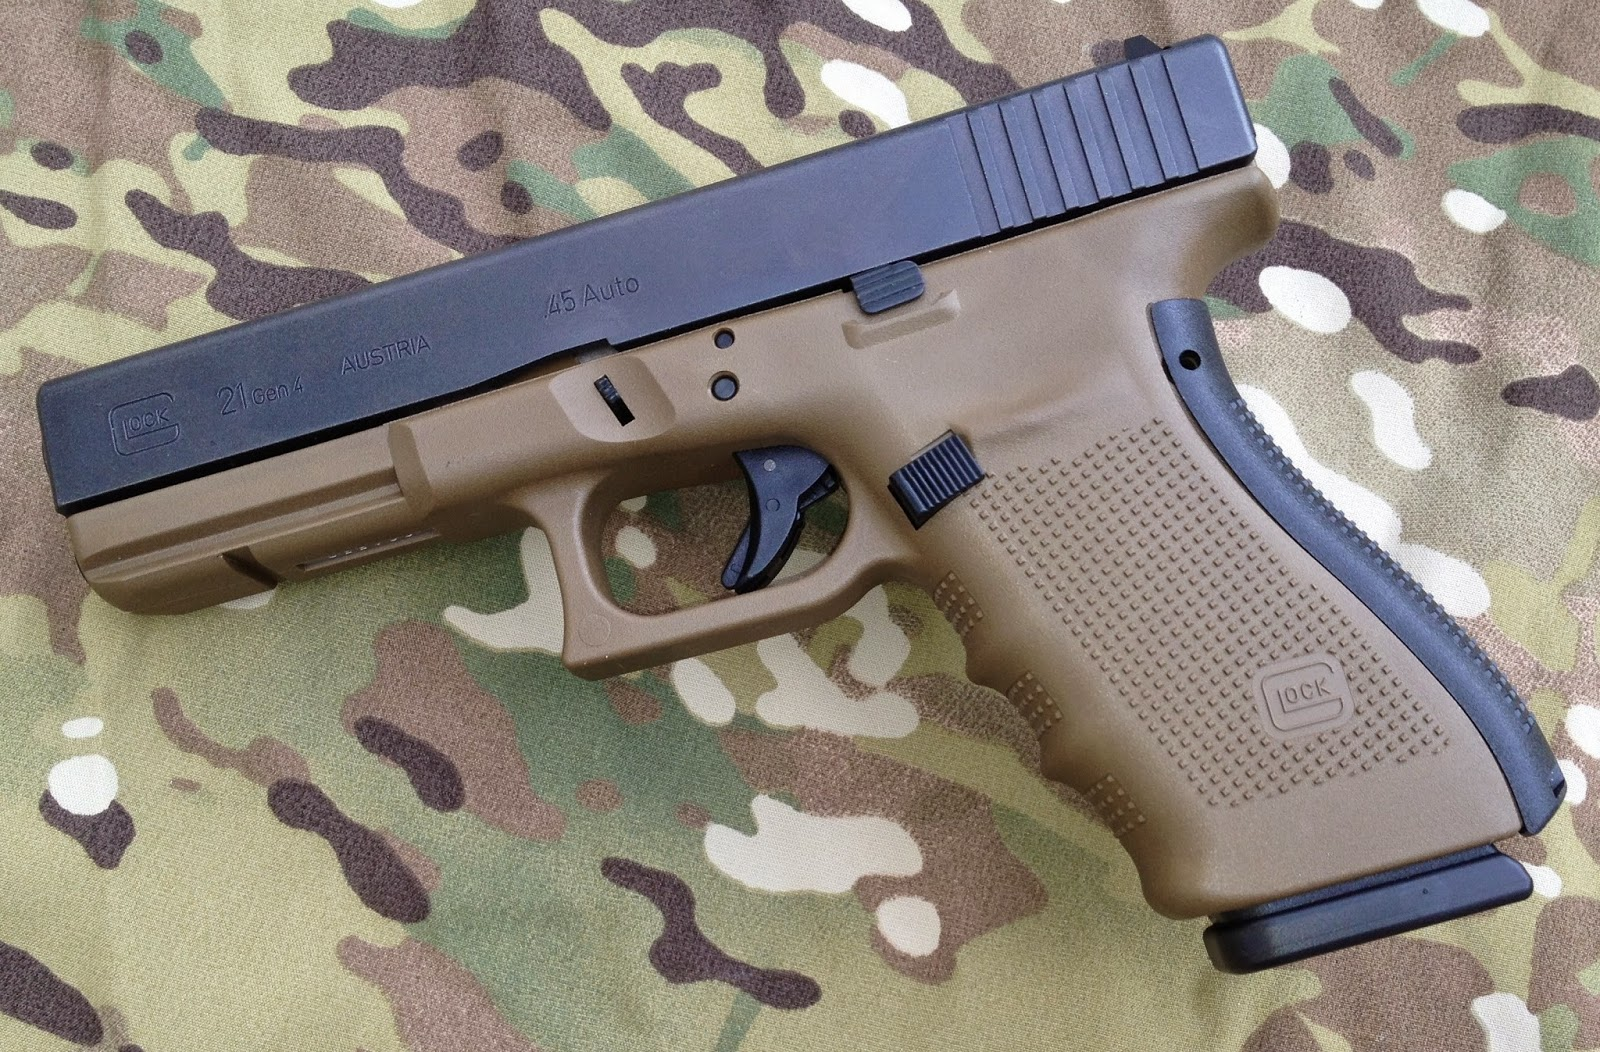 Glock 21 .45 Next Army Pistol